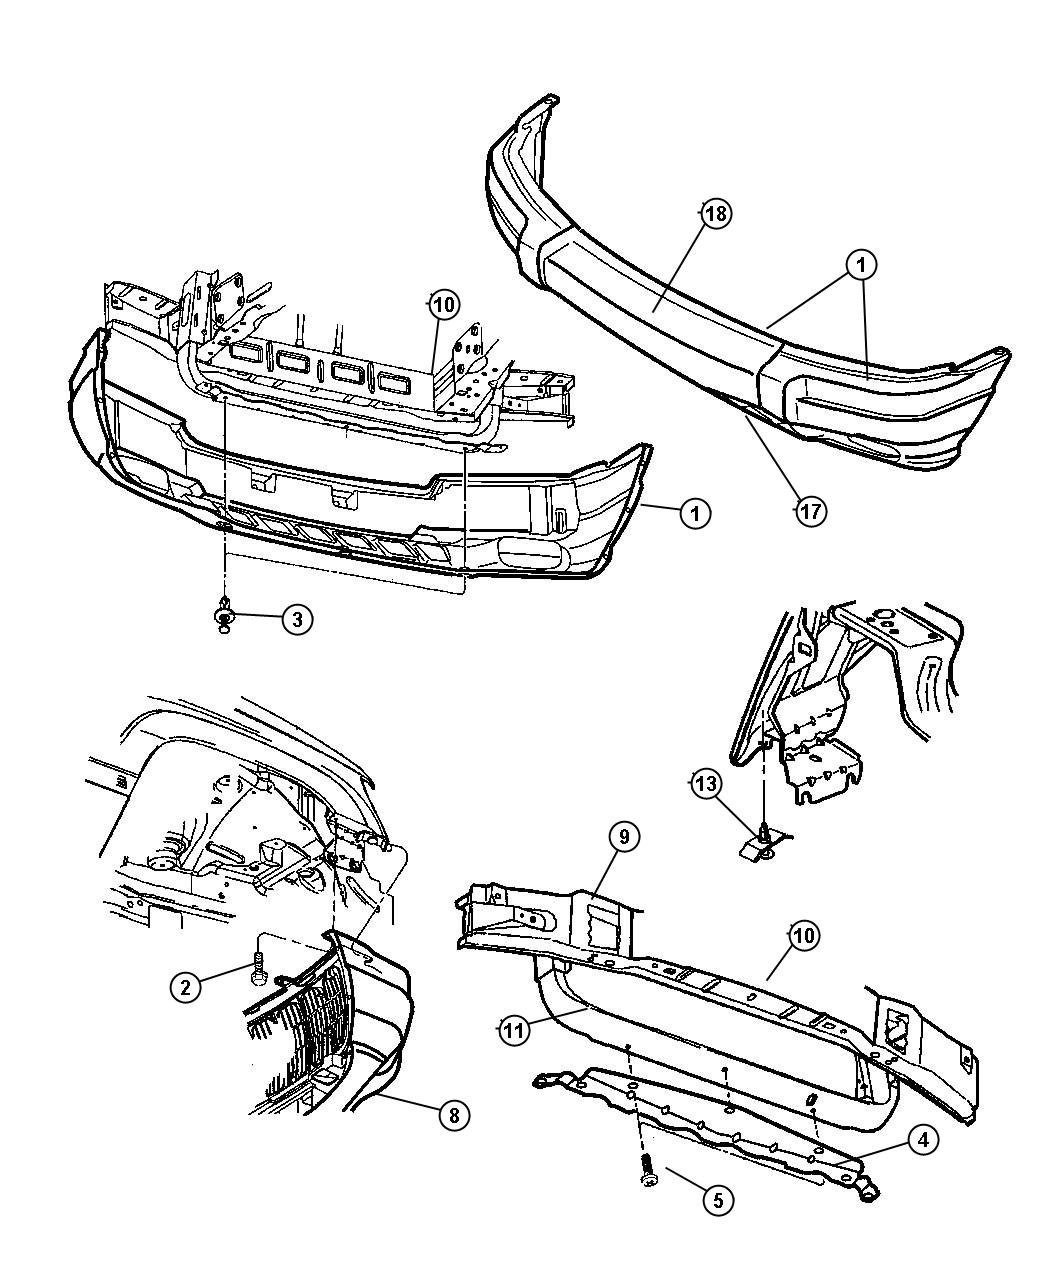 jeep wrangler tail gate parts diagram